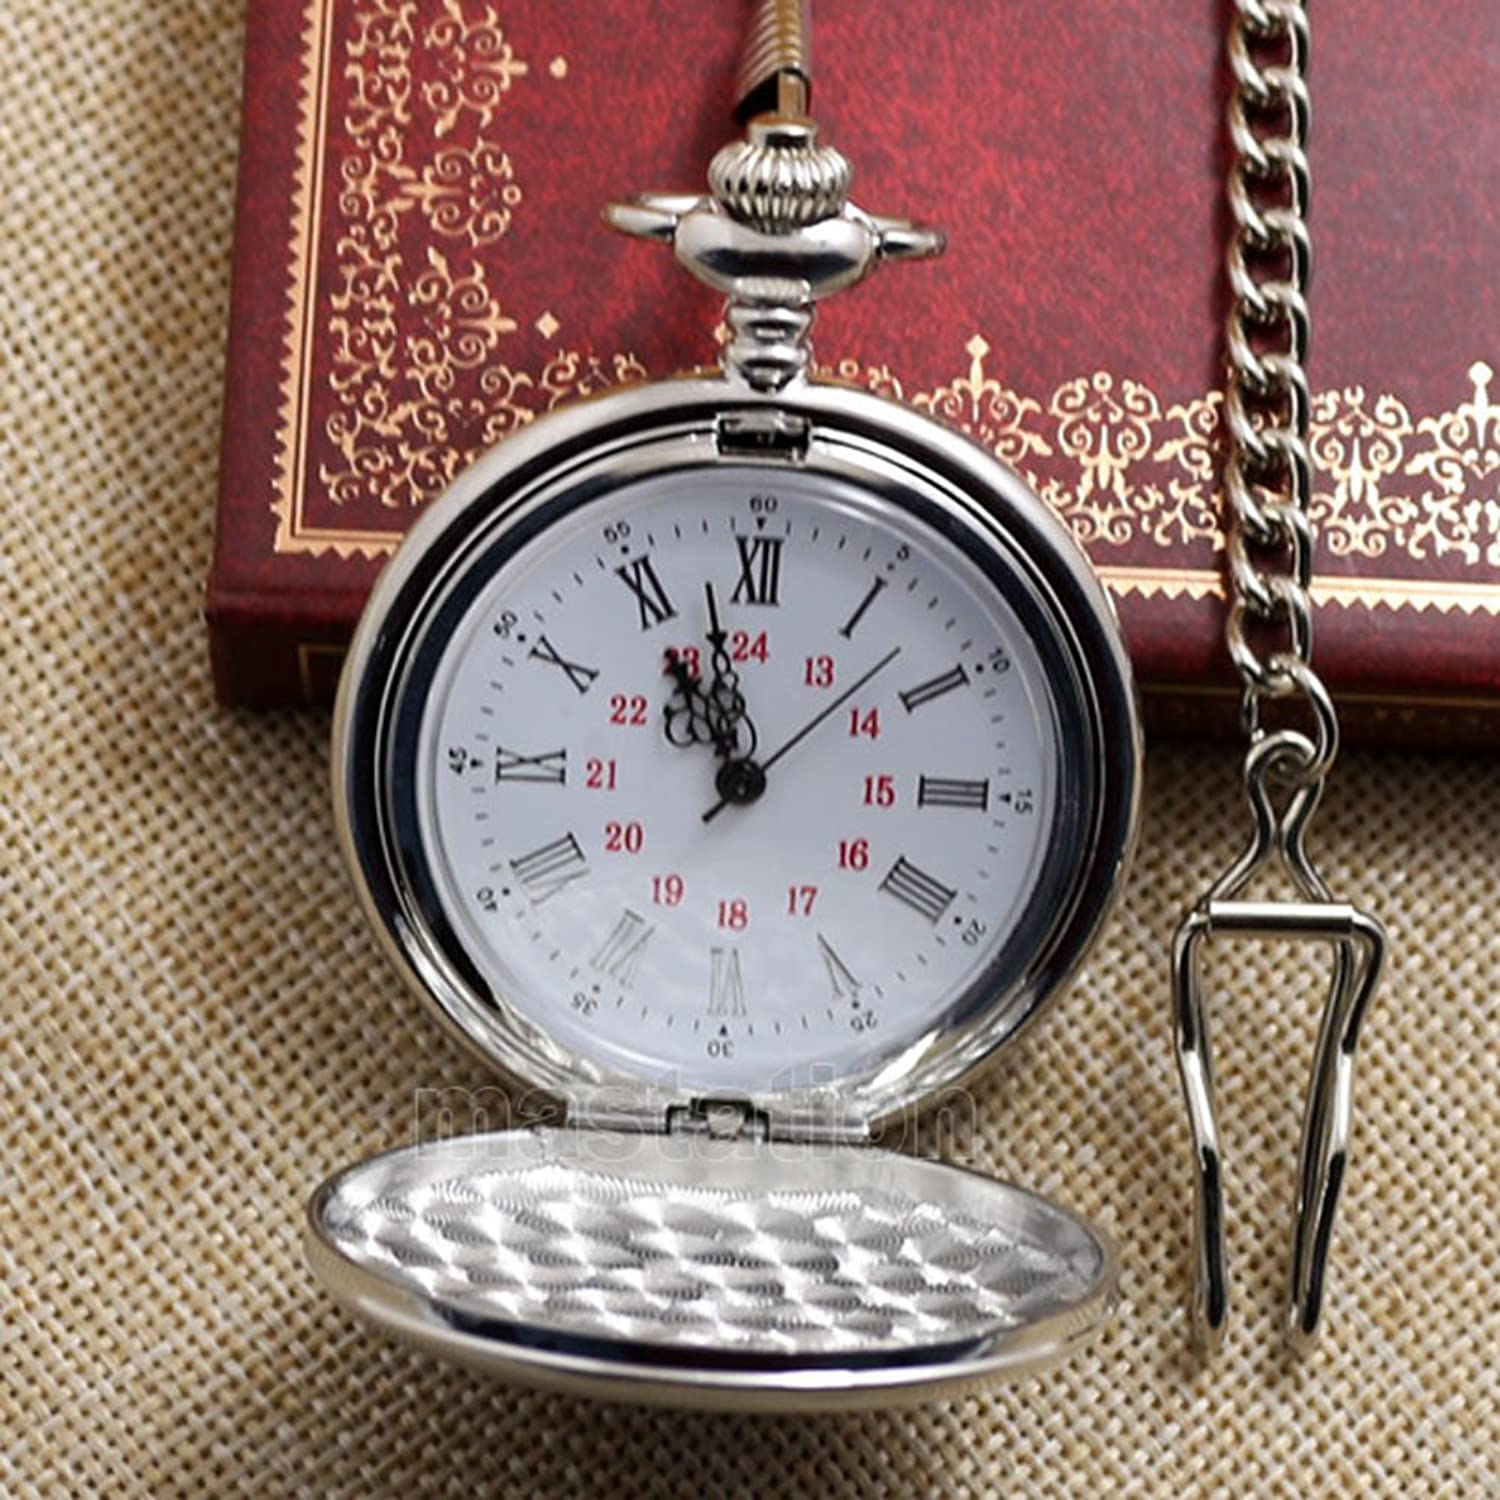 Men's Vintage Vests, Sweater Vests WIOR Classic Smooth Vintage Pocket Watch Sliver Steel Men Watch with 14'' Chain for Xmas Fathers Day Gift $9.99 AT vintagedancer.com